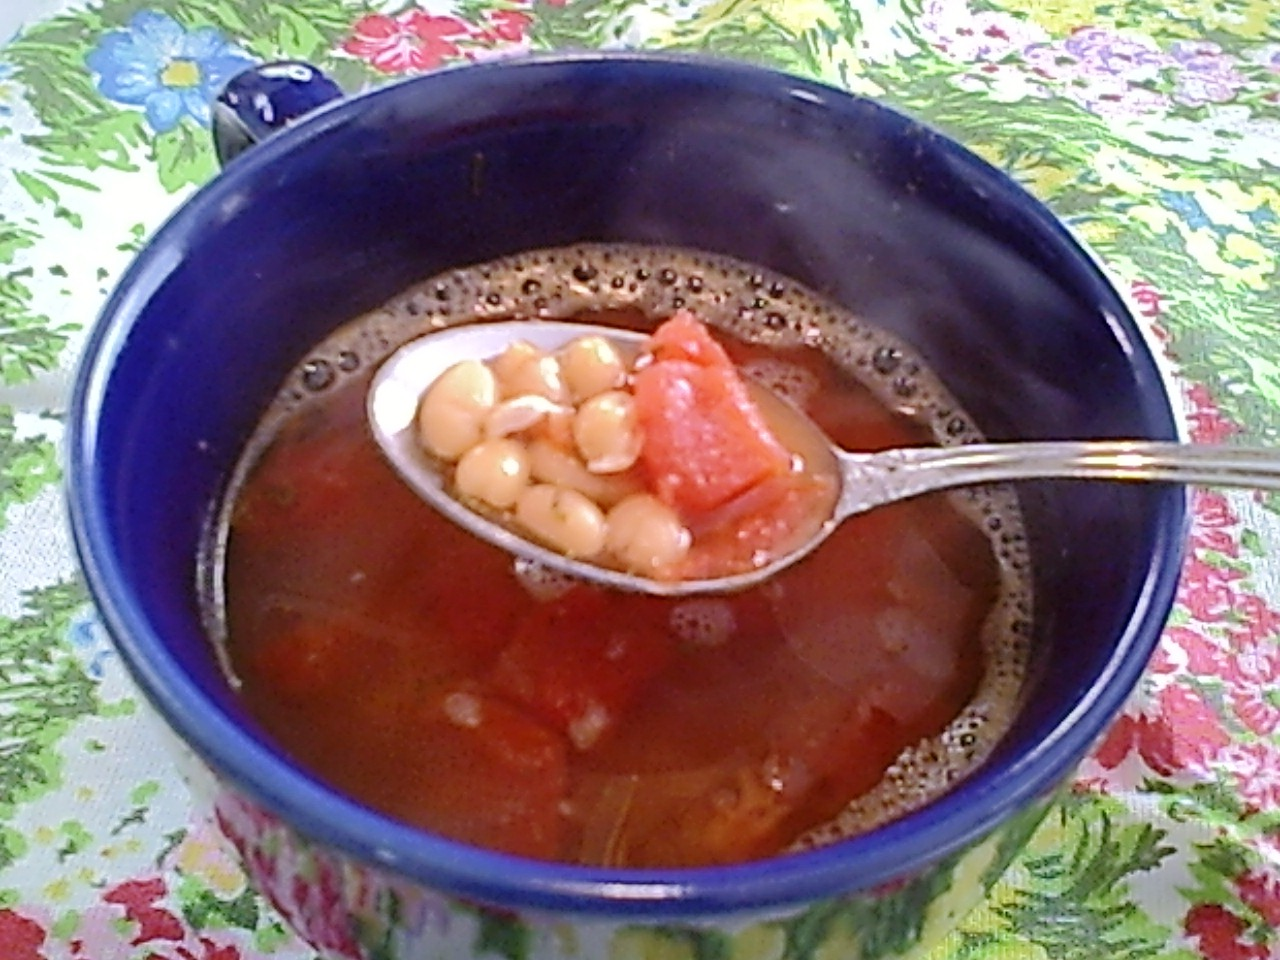 Gluten-Free Tomato Bean Soup for Lunch